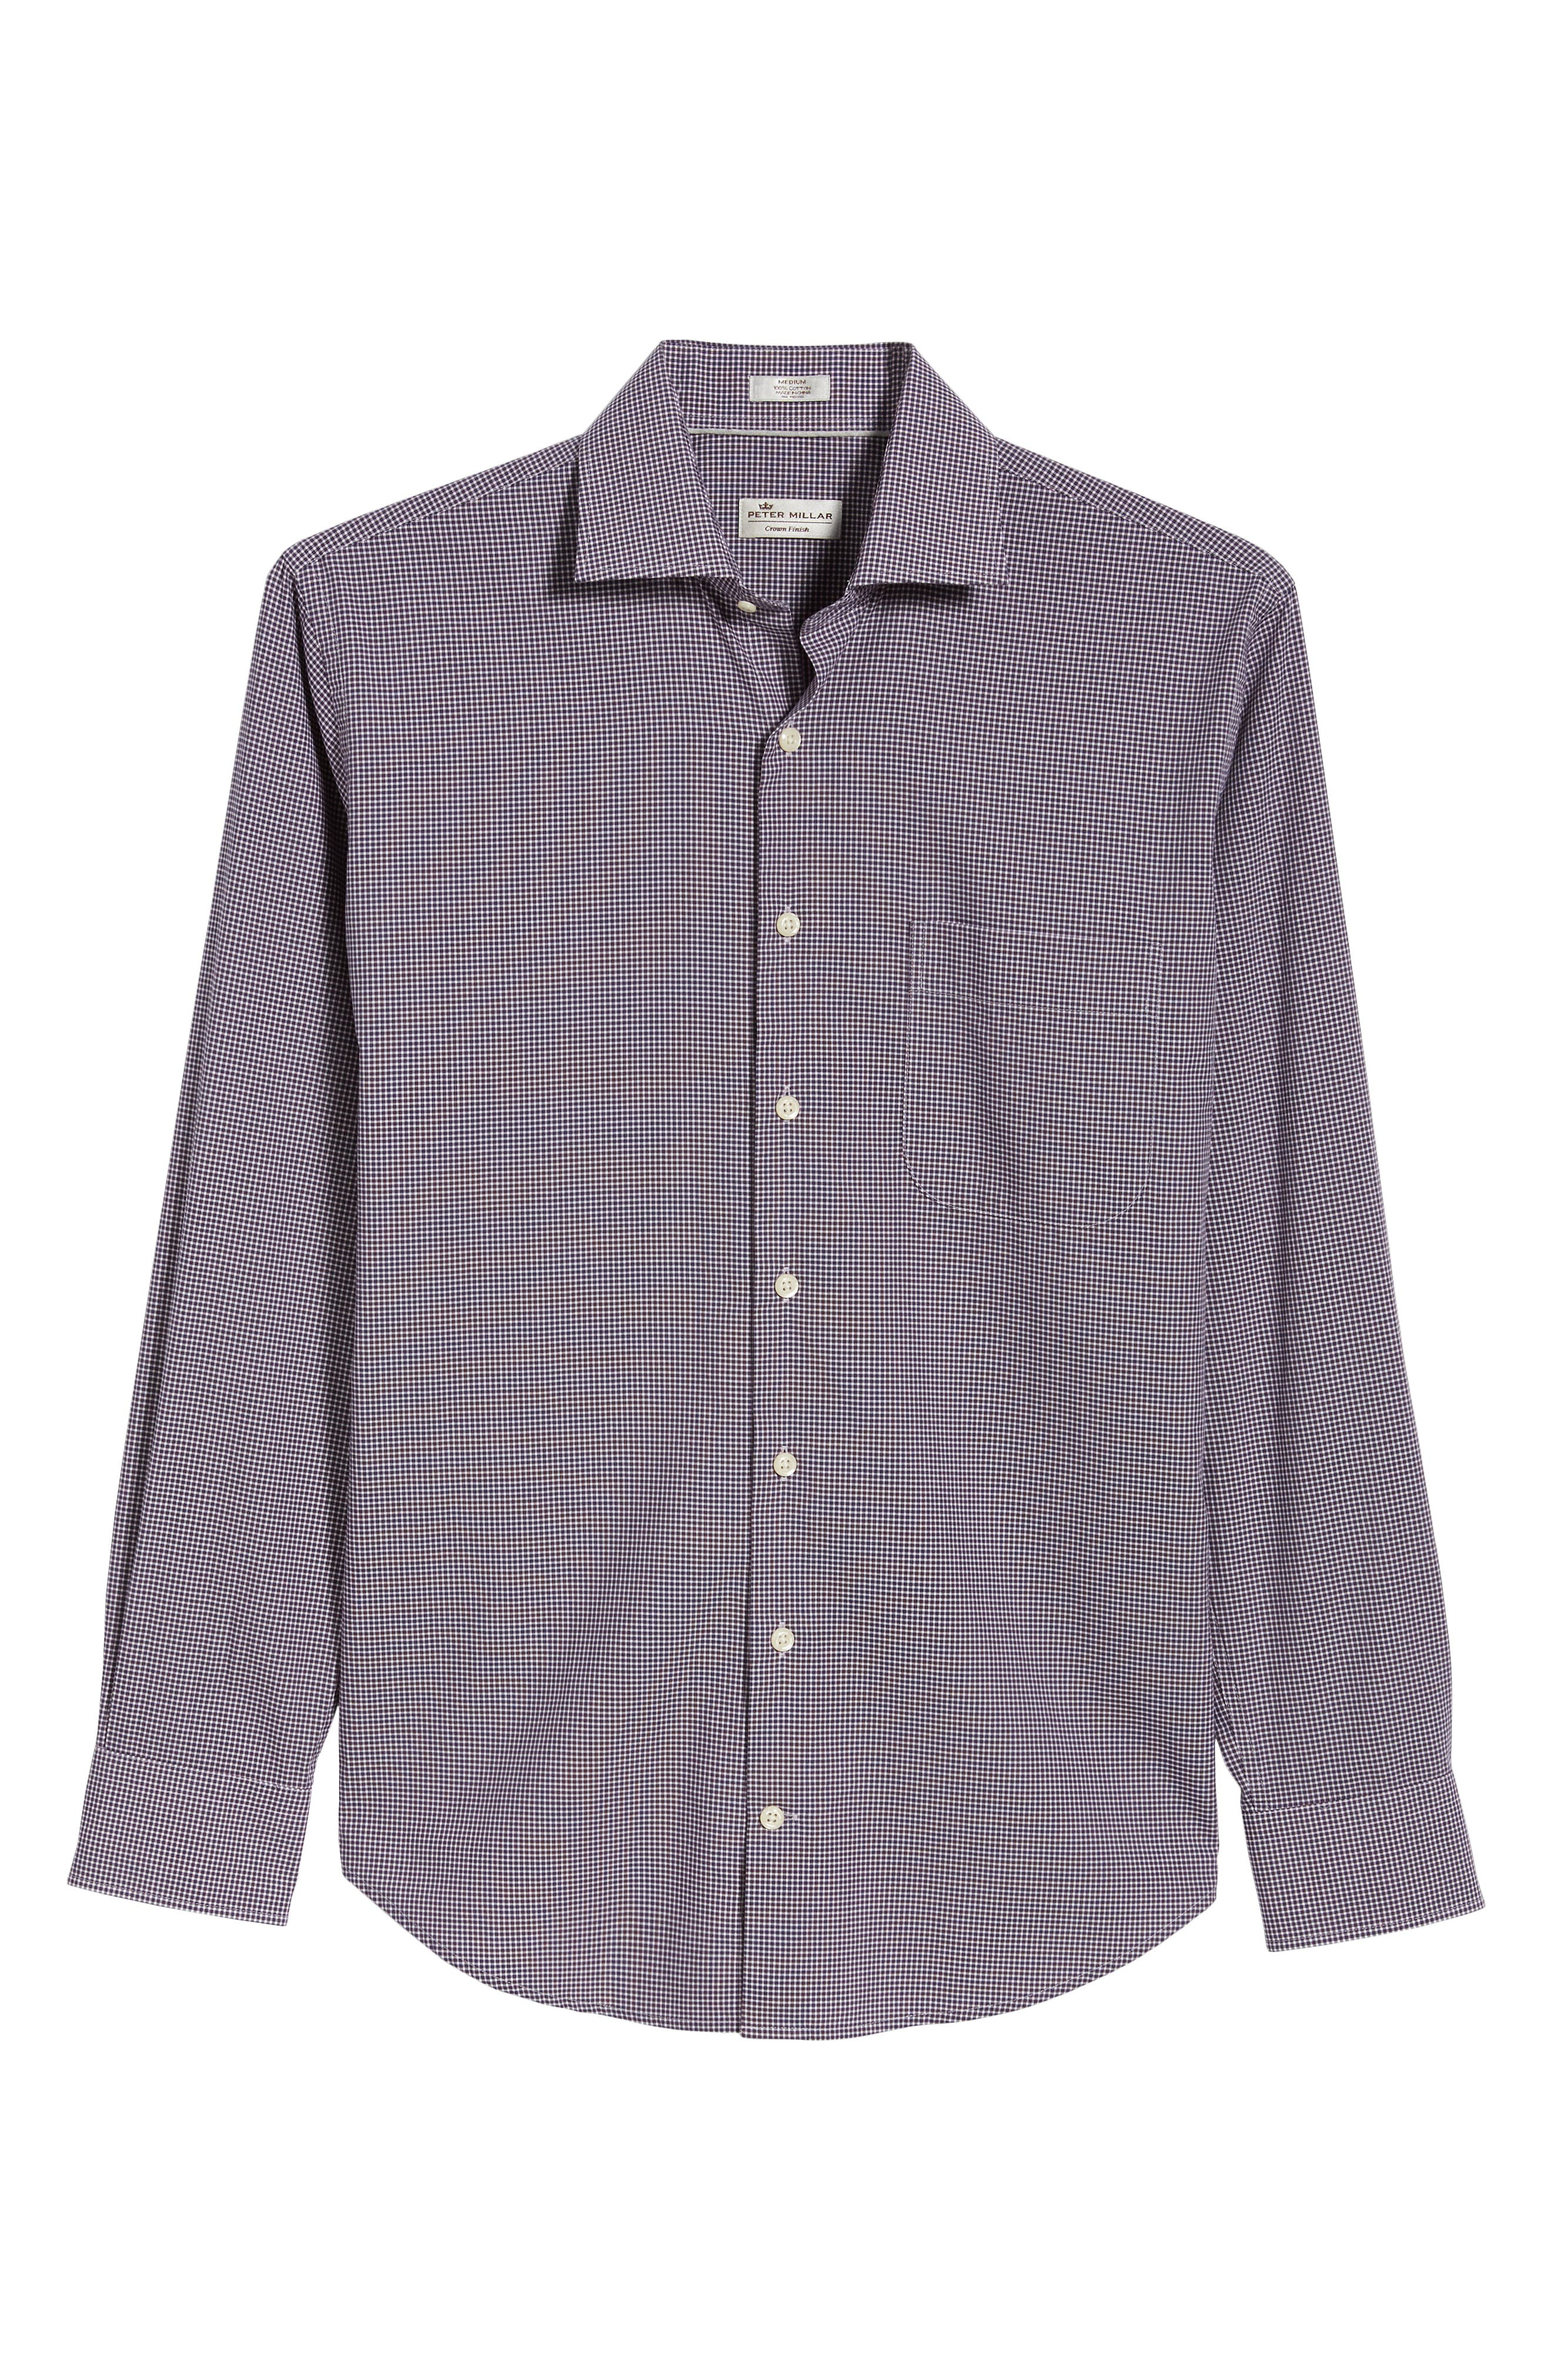 Crown Finish Wedgwood Microcheck Sport Shirt,                             Alternate thumbnail 6, color,                             410